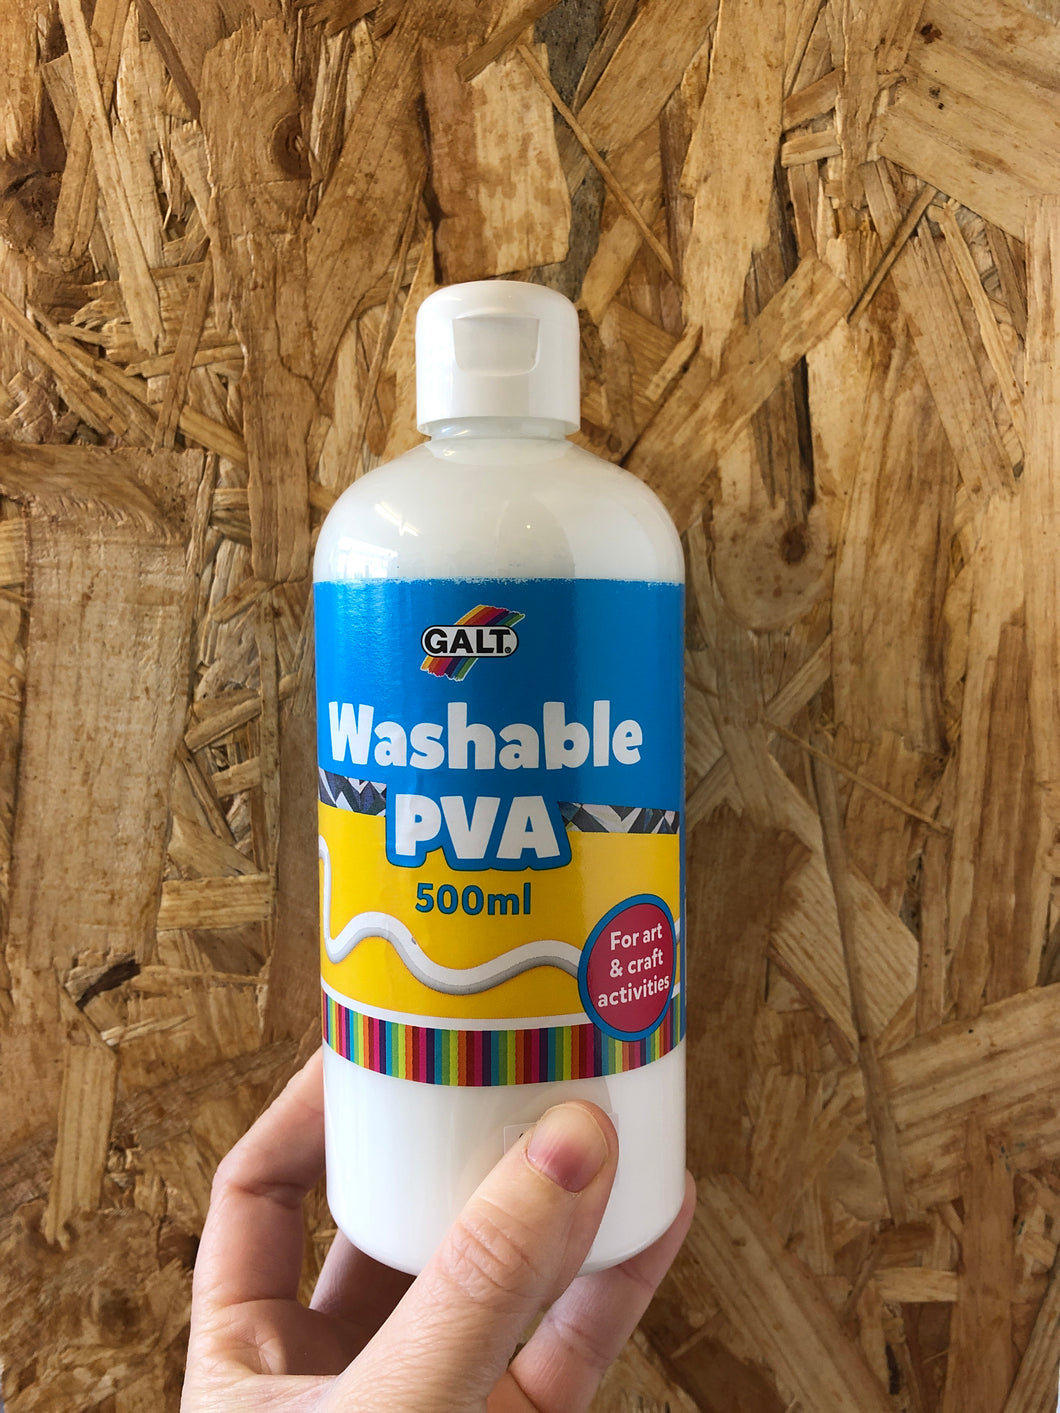 Galt Washable PVA Glue